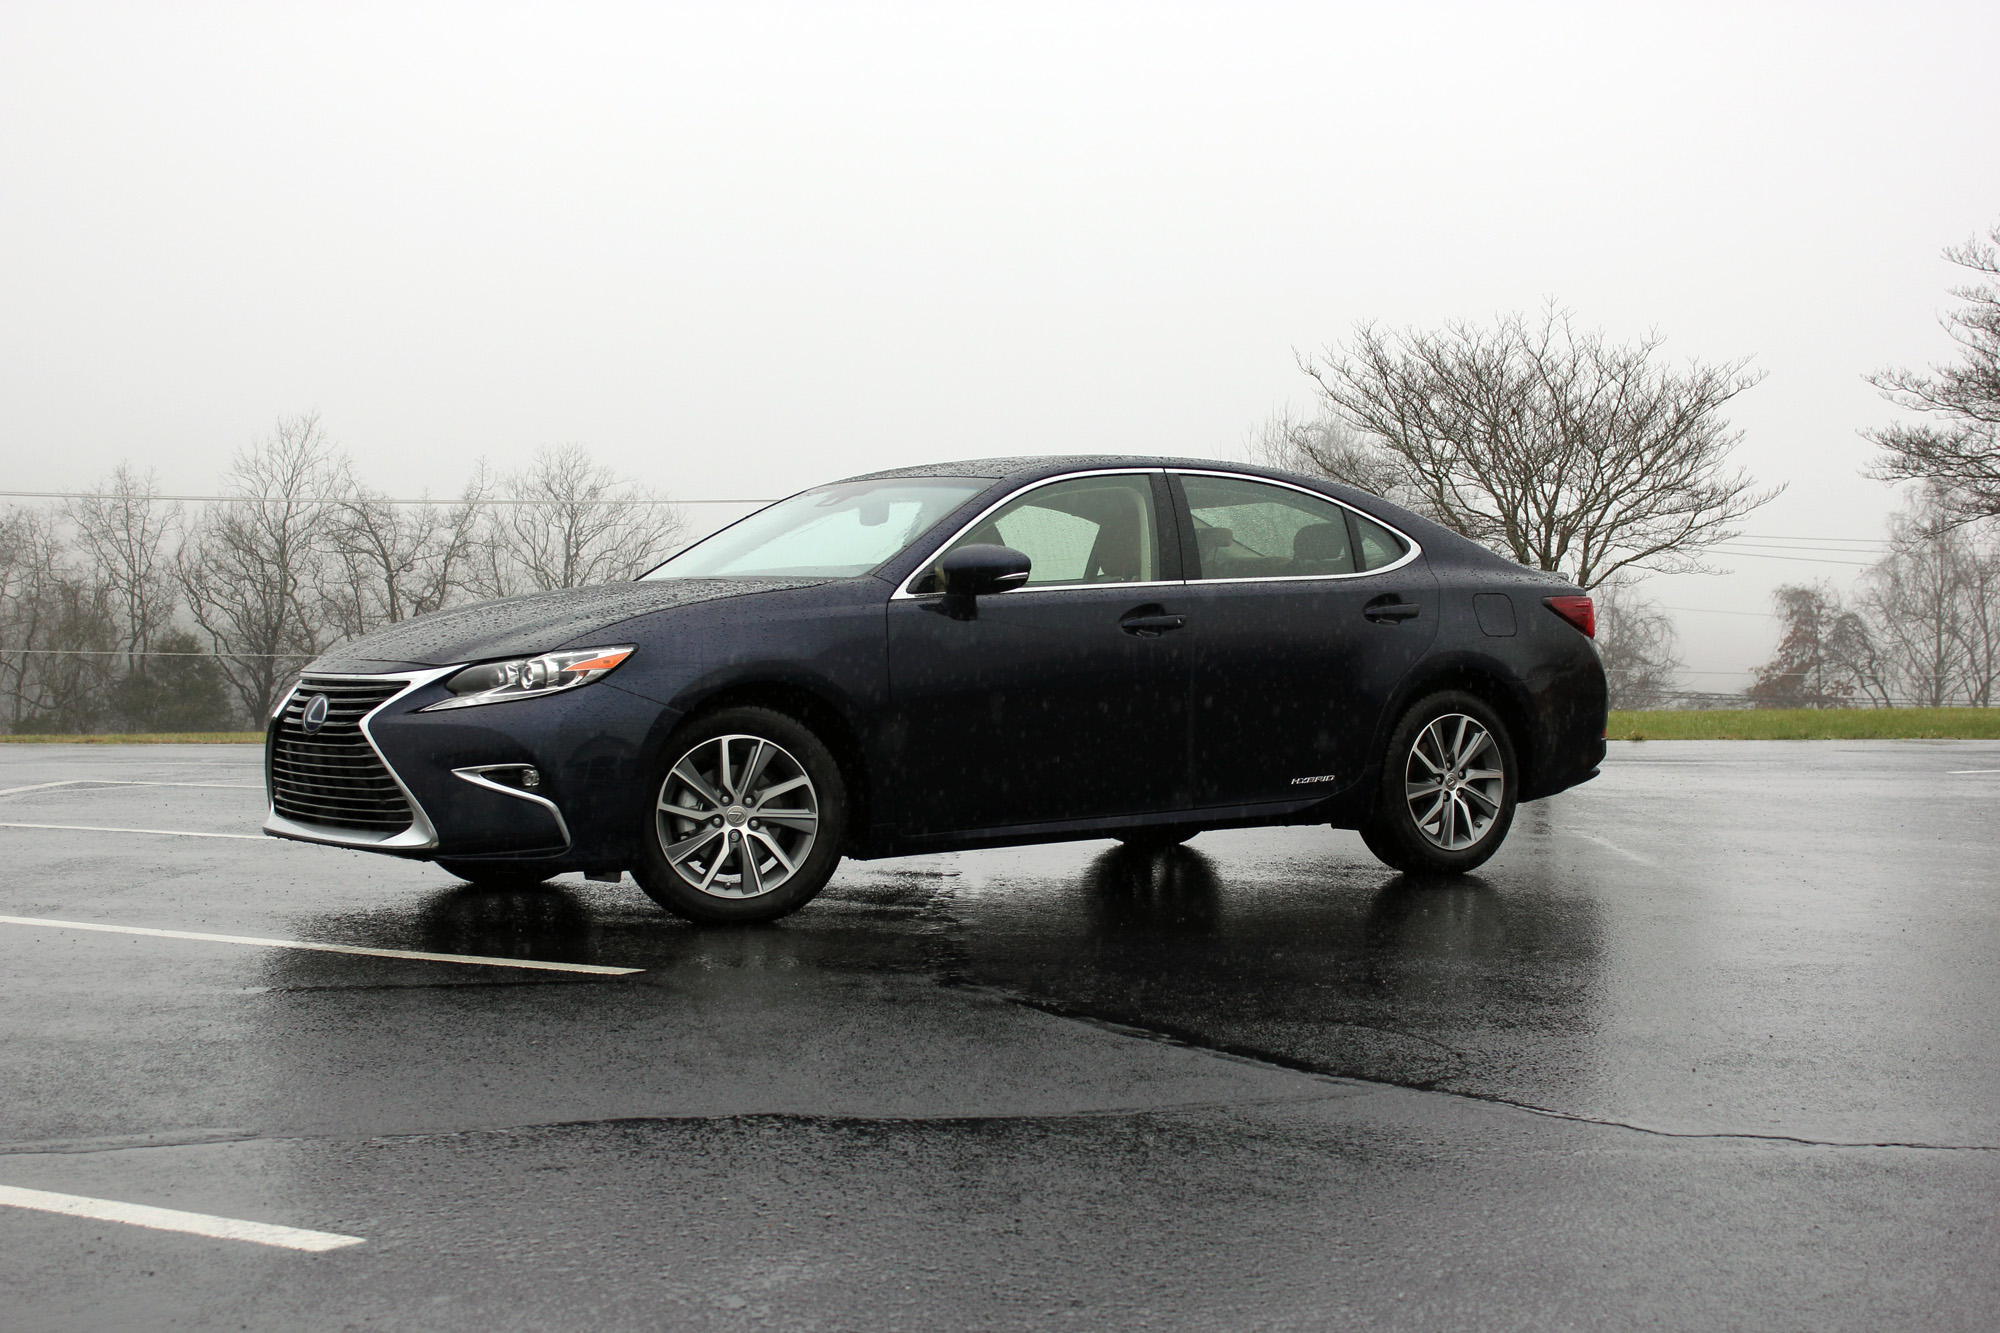 2016 Lexus ES 300h Review